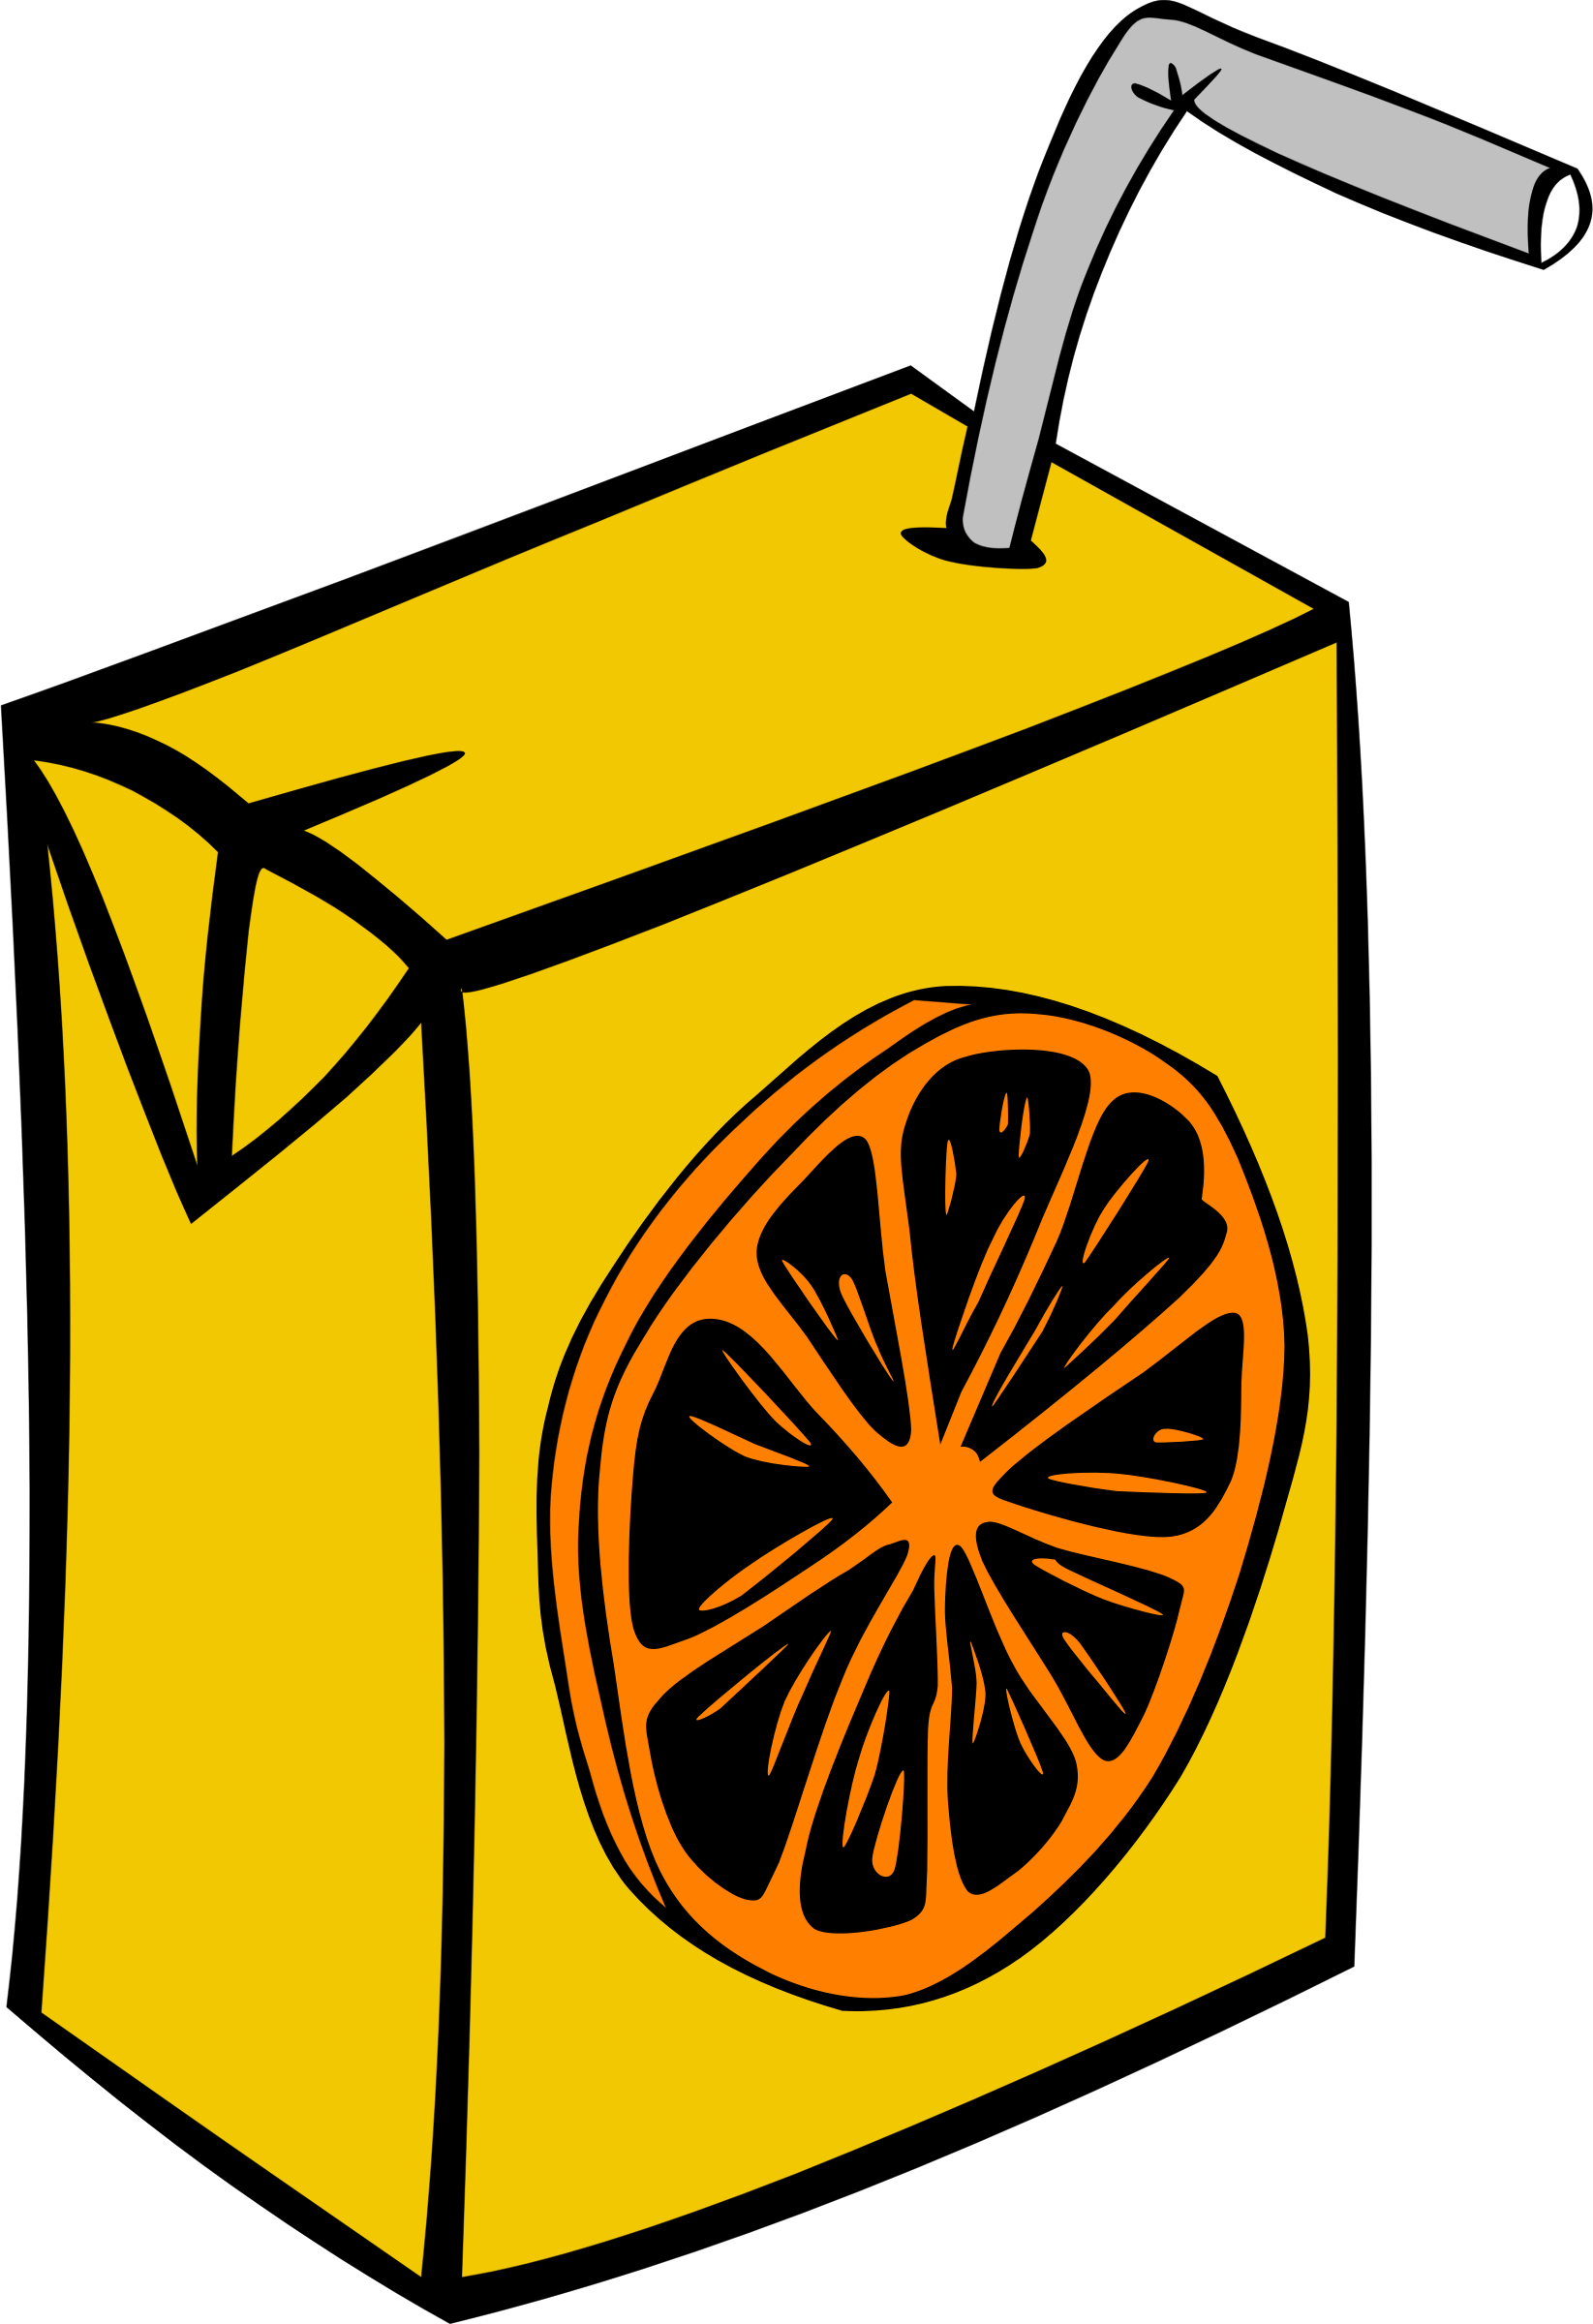 drinks clipart fast food